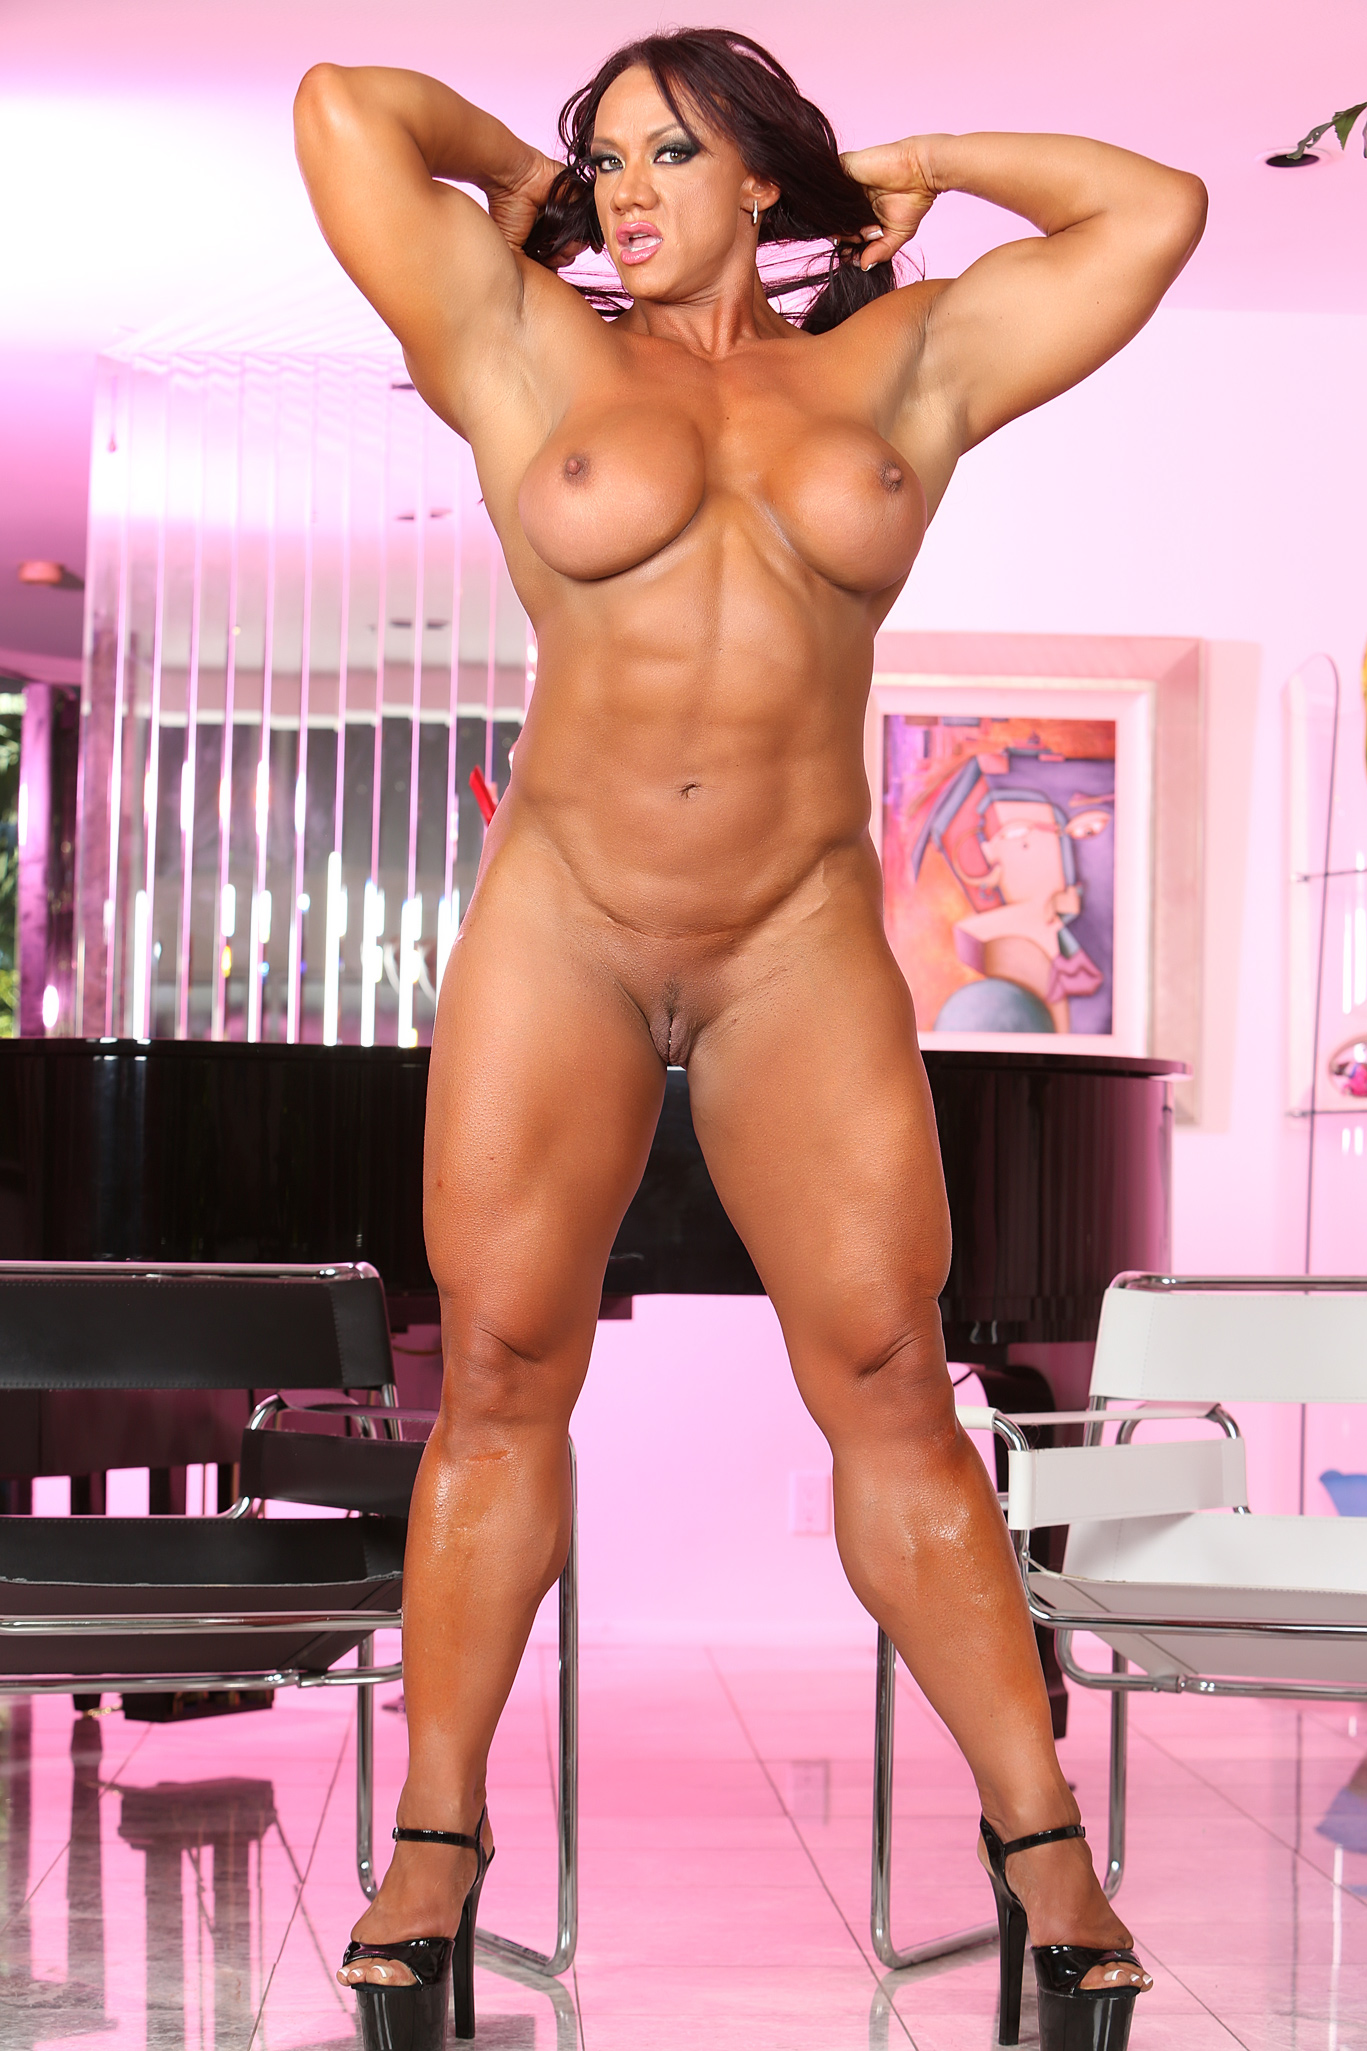 Abby marie fitness model gets naked 2